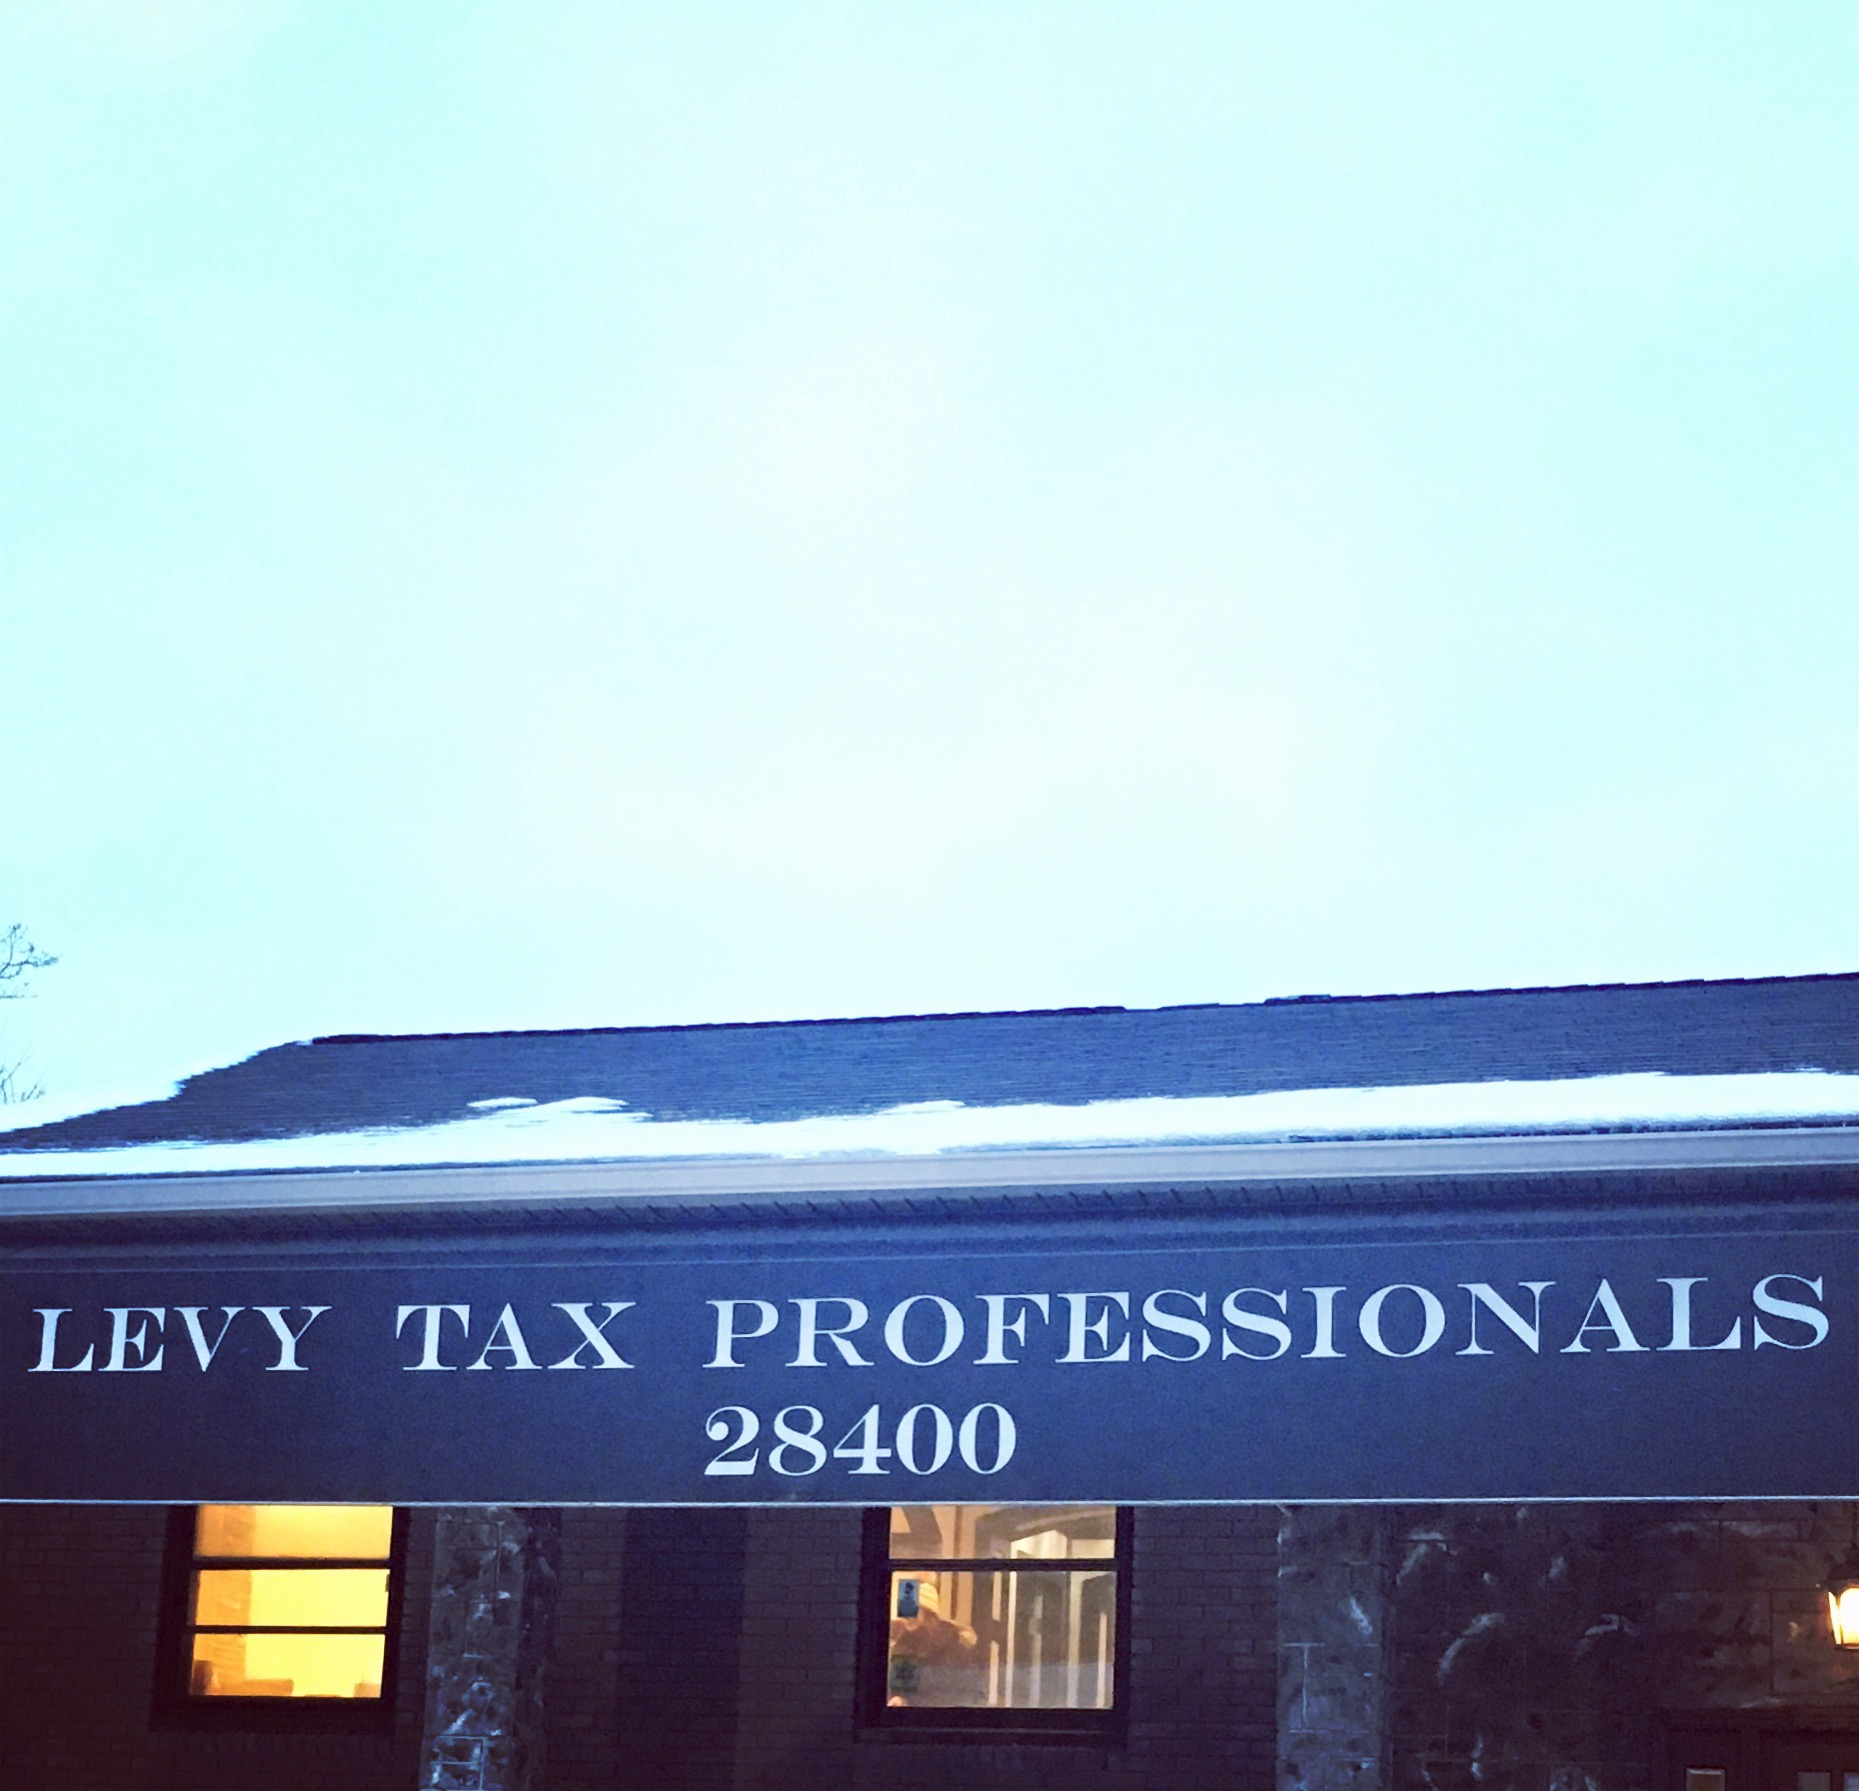 Aren't  levy  and  tax  synonyms? Dunno, Seems redundant.